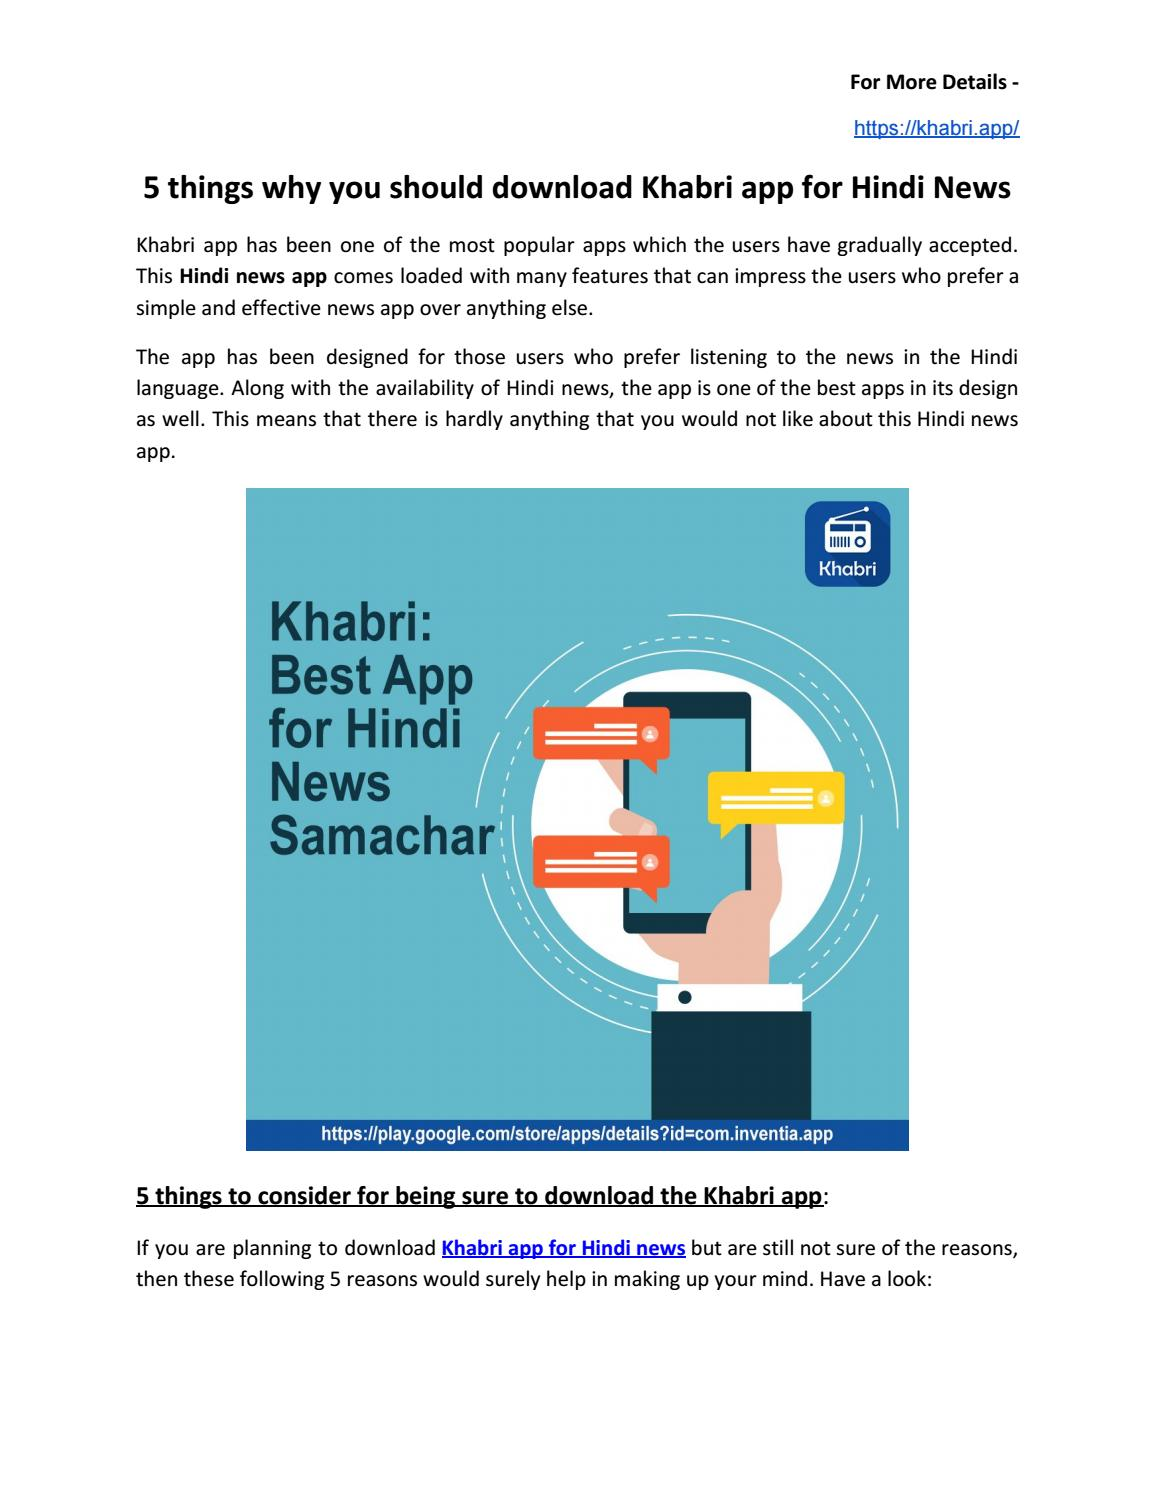 5 things why you should download Khabri app for Hindi News